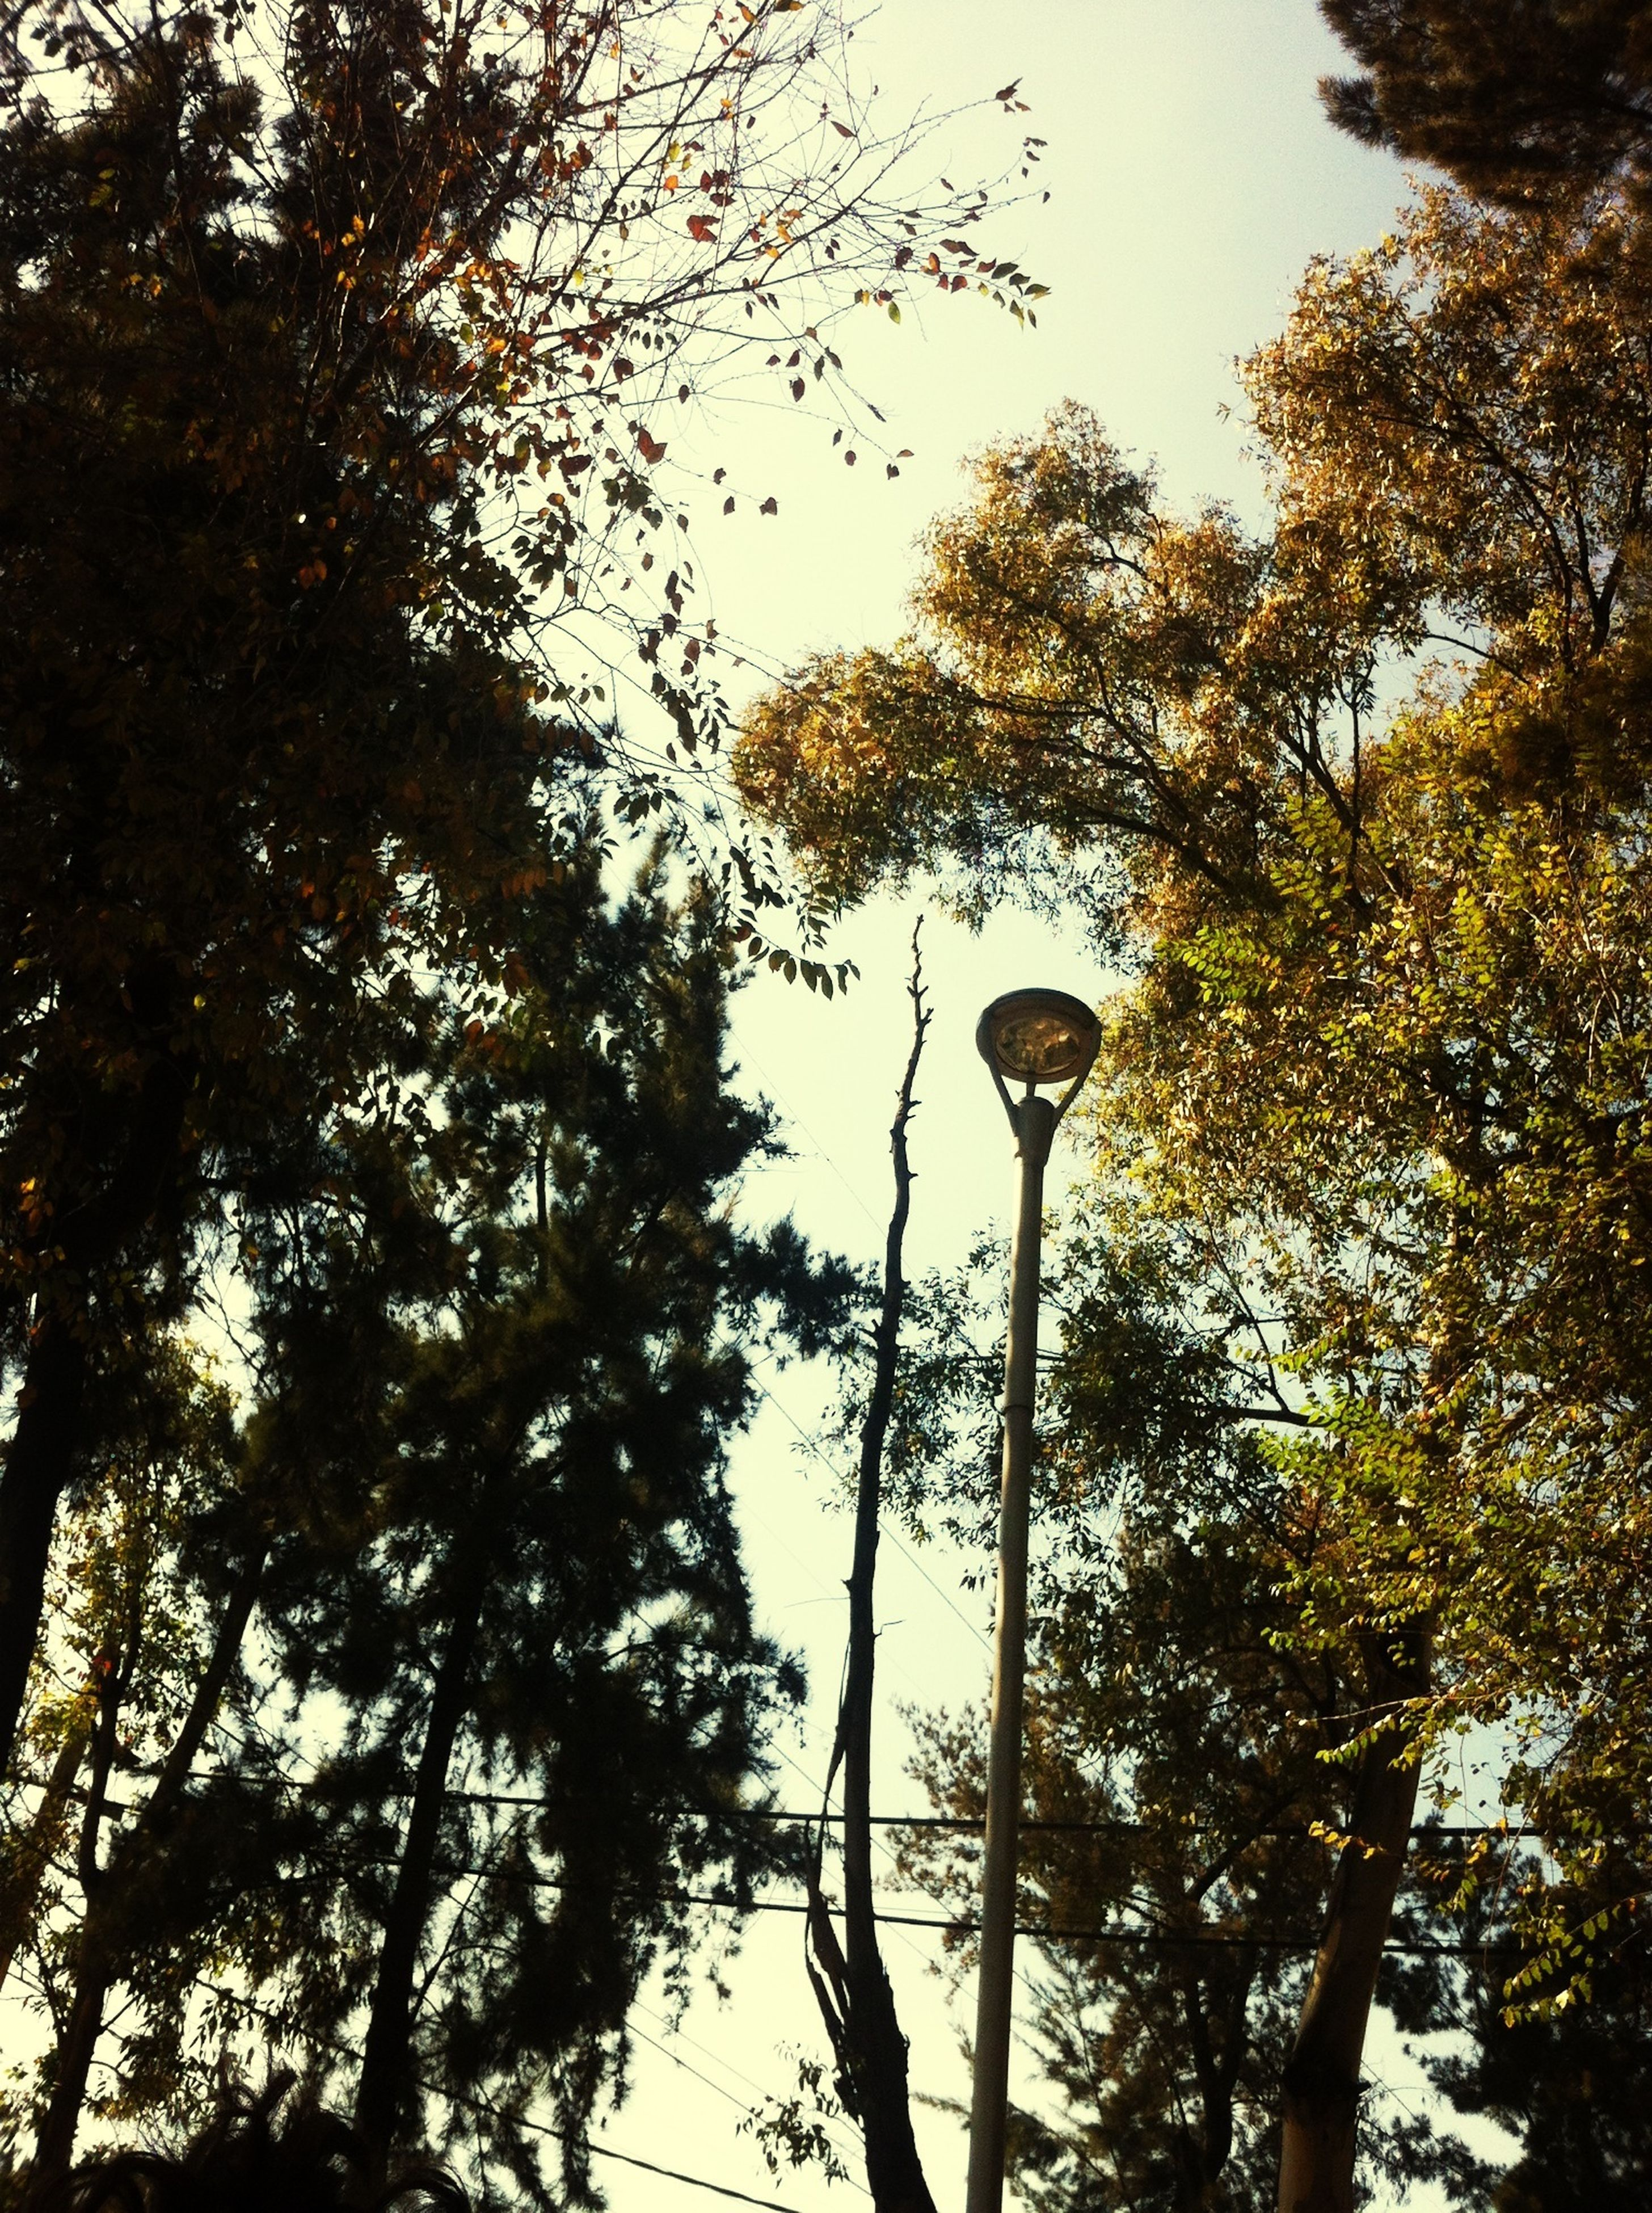 tree, low angle view, street light, branch, lighting equipment, growth, clear sky, sky, nature, tall - high, outdoors, day, no people, tree trunk, lamp post, pole, tranquility, bird, high section, beauty in nature